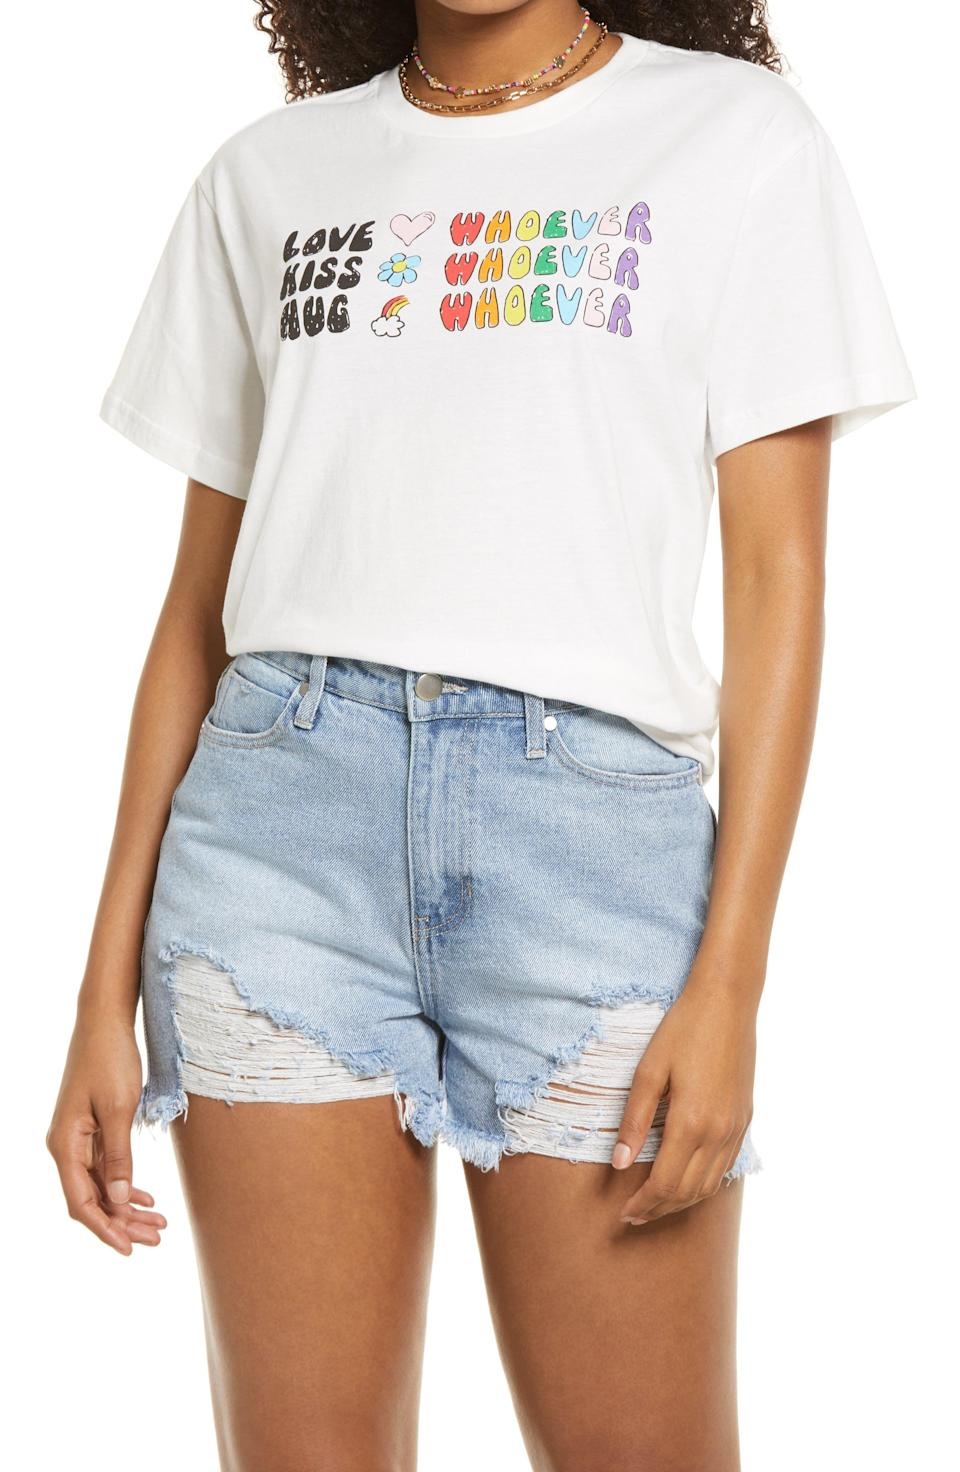 """<p><strong>BP</strong></p><p>nordstrom.com</p><p><strong>$35.00</strong></p><p><a href=""""https://go.redirectingat.com?id=74968X1596630&url=https%3A%2F%2Fwww.nordstrom.com%2Fs%2Fbp-be-proud-by-bp-gender-inclusive-pride-graphic-tee%2F5865331&sref=https%3A%2F%2Fwww.townandcountrymag.com%2Fstyle%2Fg36620407%2Fthe-weekly-covet-june-4-2021%2F"""" rel=""""nofollow noopener"""" target=""""_blank"""" data-ylk=""""slk:Shop Now"""" class=""""link rapid-noclick-resp"""">Shop Now</a></p>"""